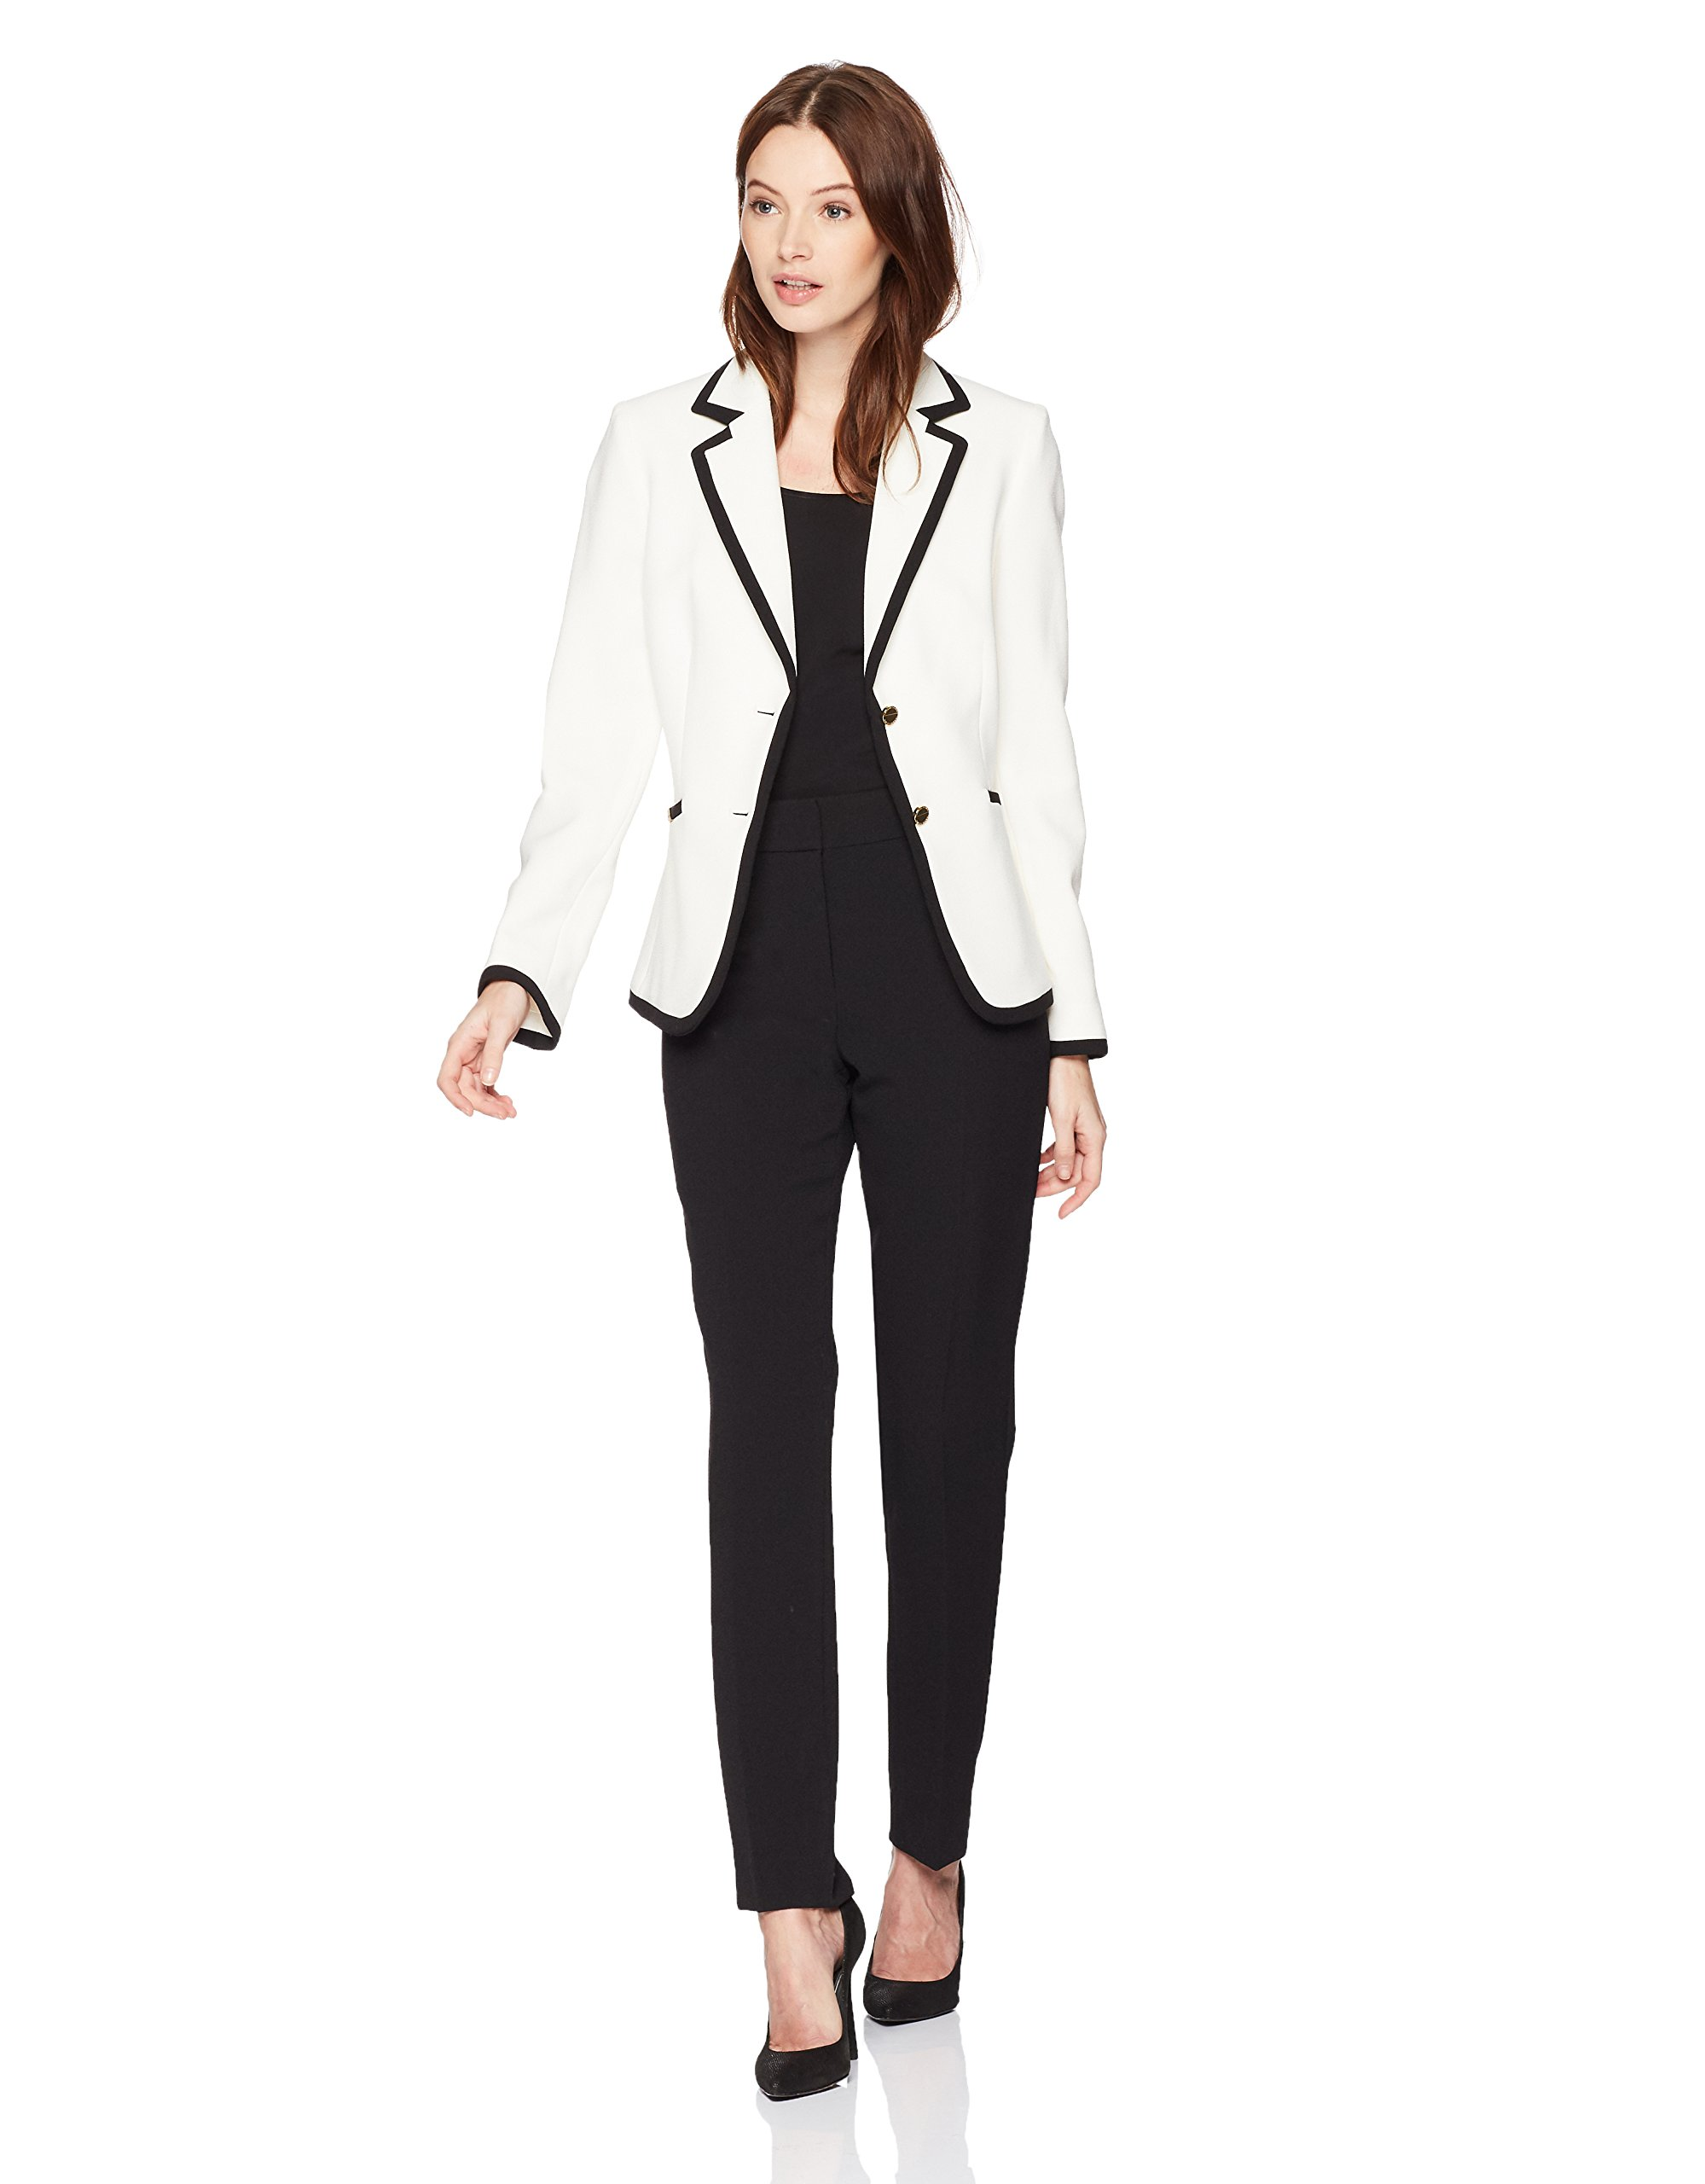 790dc141fffe5 Get Quotations · Tahari by Arthur S. Levine Women's Pebble Crepe Long  Sleeve Pant Suit With Framing Detail